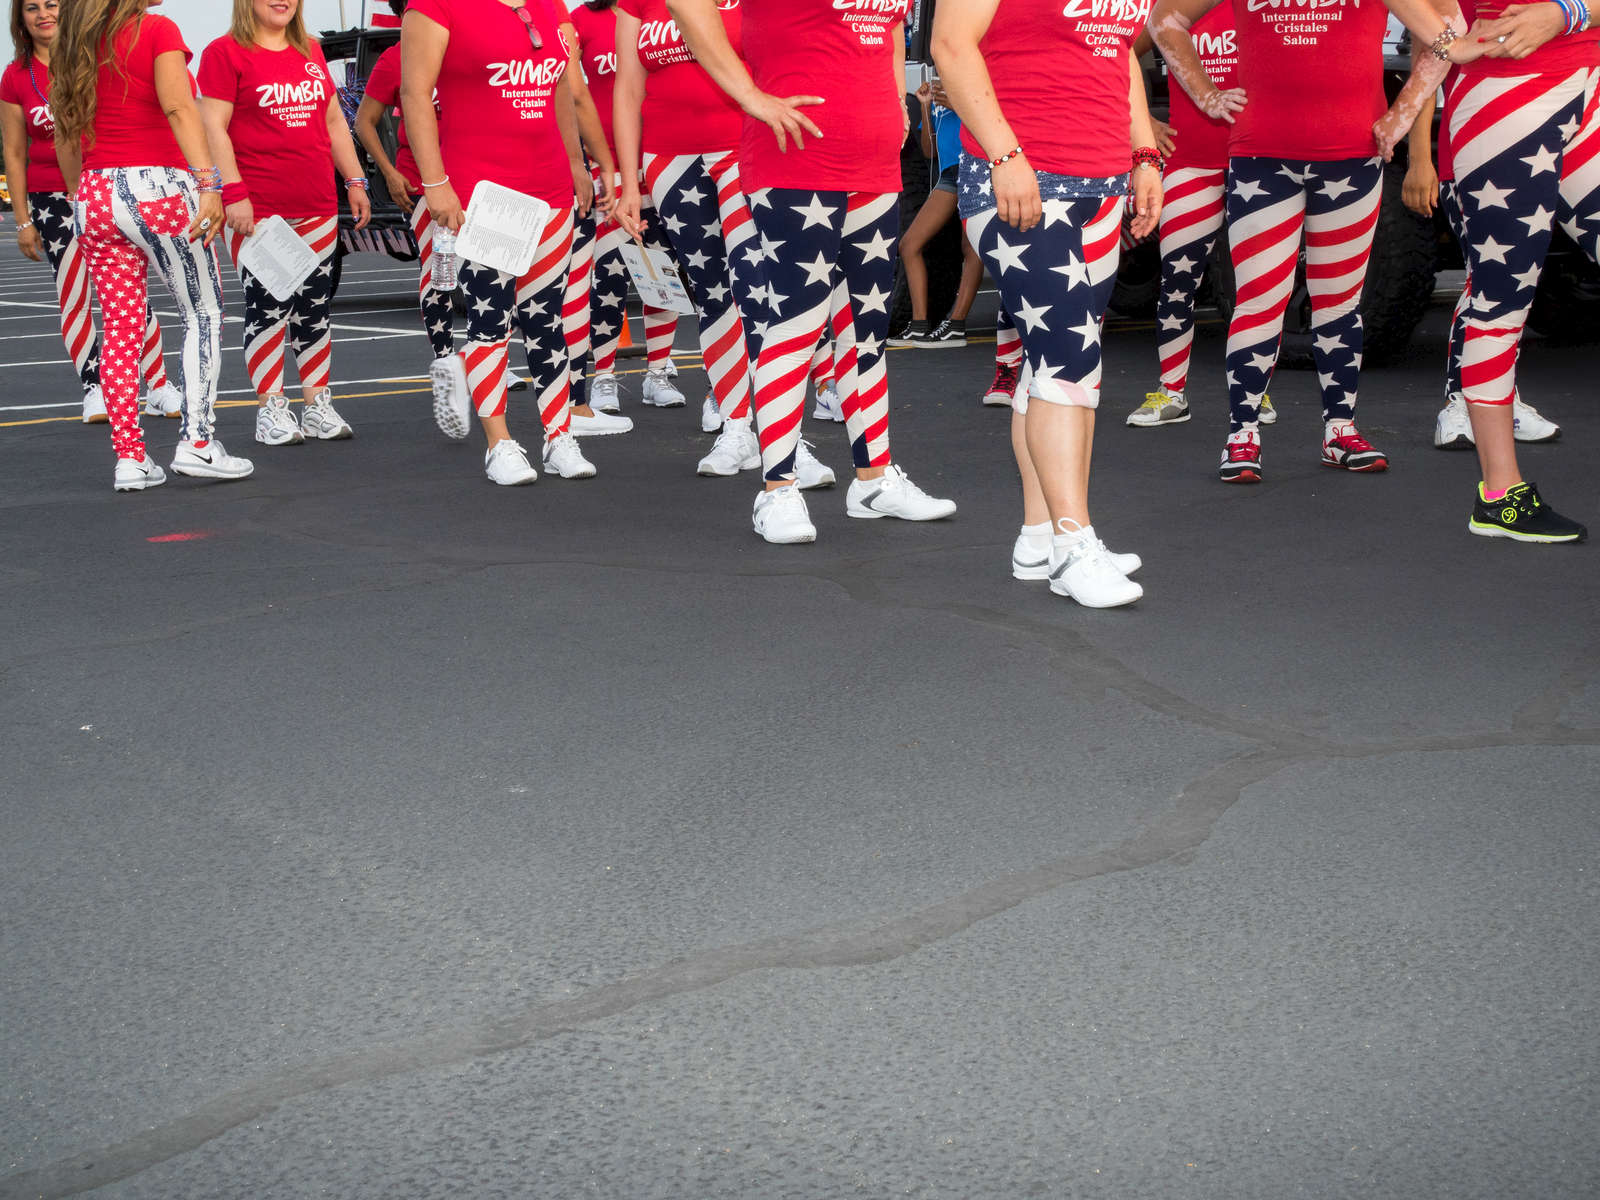 Zumba dancers prepare for the 4thy July parade in Alrington, a city 20 miles west of downtown Dallas.Dallas is a major city in Texas and is the largest urban center of the fourth most populous metropolitan area in the United States. The city ranks ninth in the U.S. and third in Texas after Houston and San Antonio. The city's prominence arose from its historical importance as a center for the oil and cotton industries, and its position along numerous railroad lines.For two weeks in the summer of 2015, photographer Peter Dench visited Dallas to document the metroplex in his epic reportage, DENCH DOES DALLAS.Photographed using an Olympus E-M5 Mark II©Peter Dench/Getty Images Reportage